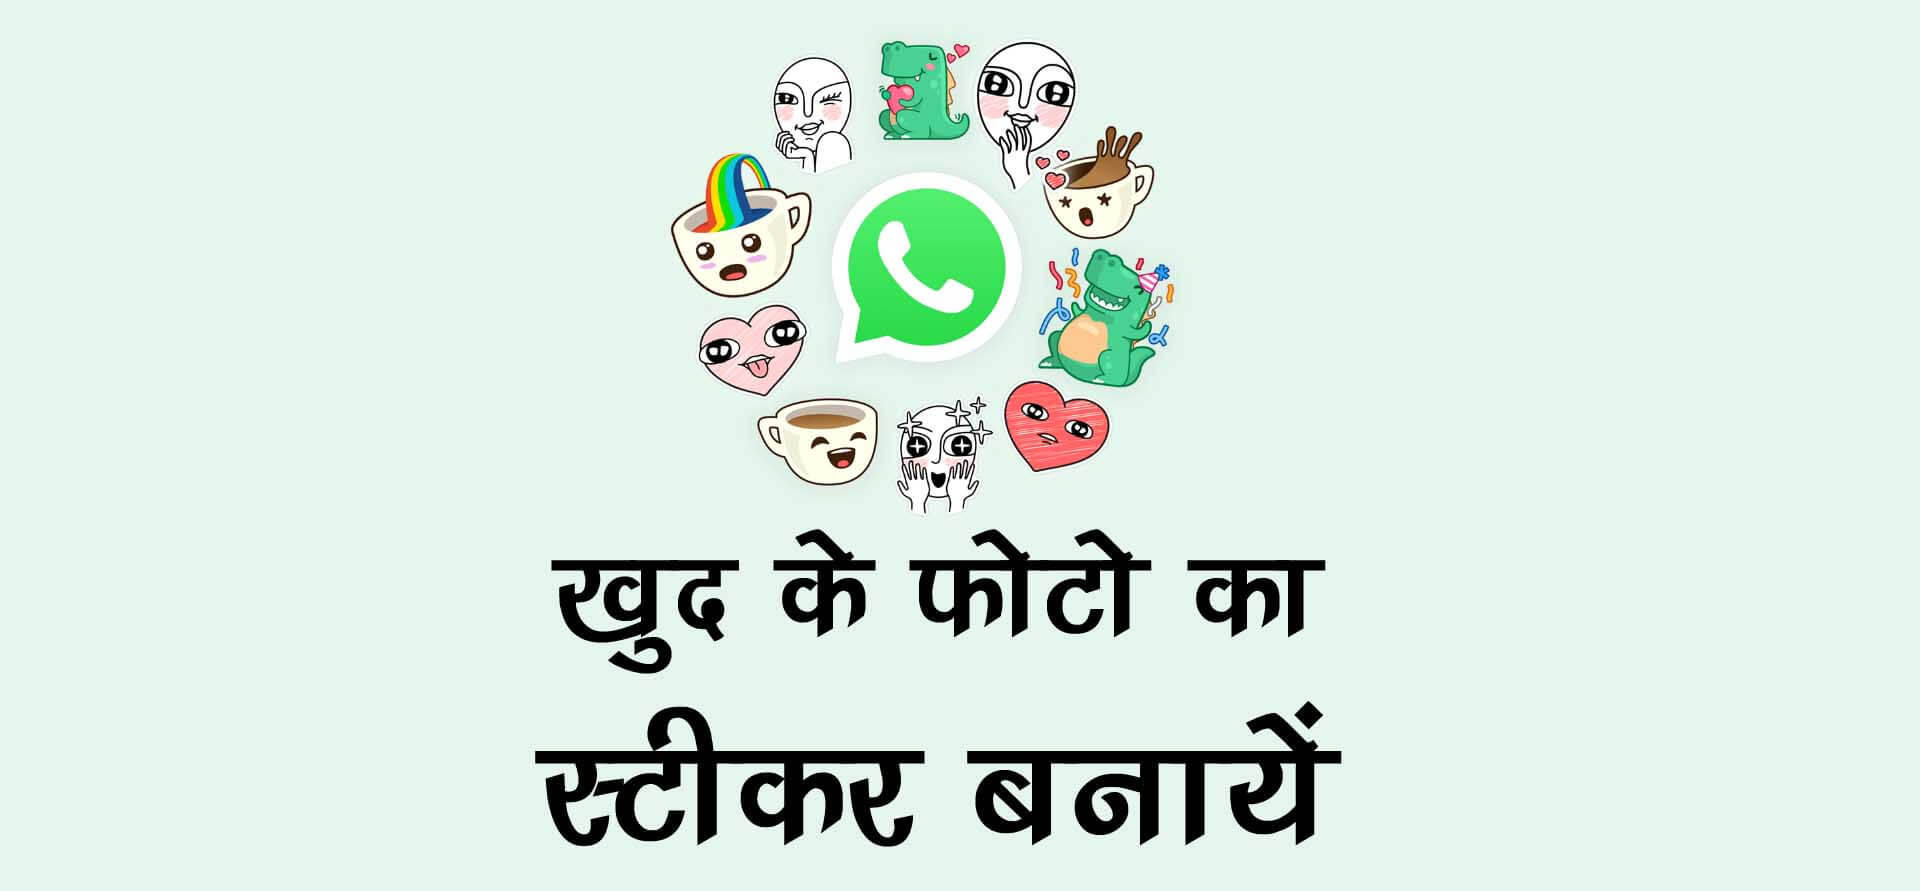 WhatsApp Sticker Kaise Banaye?